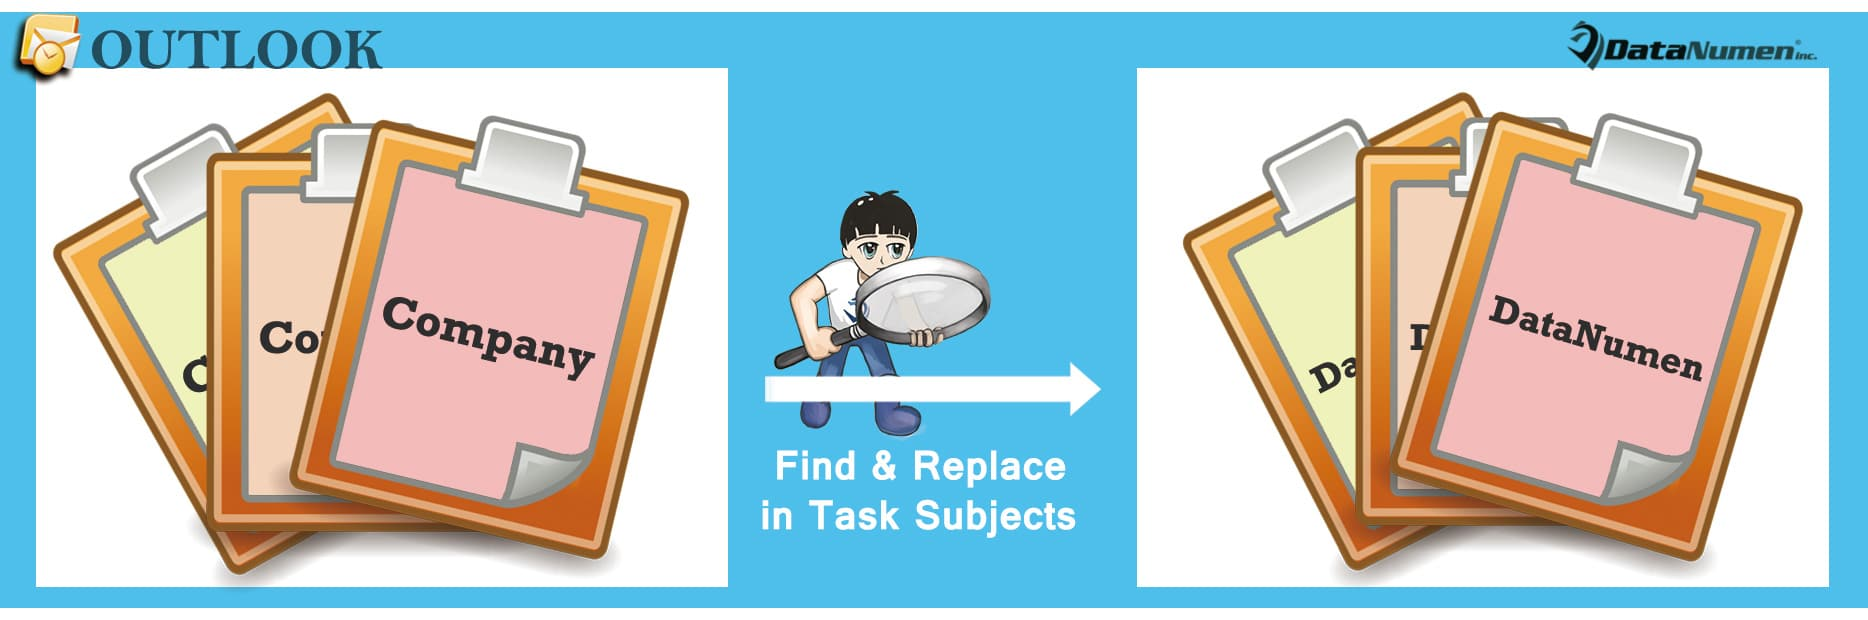 Batch Find & Replace Text in All Tasks' Subjects in Your Outlook